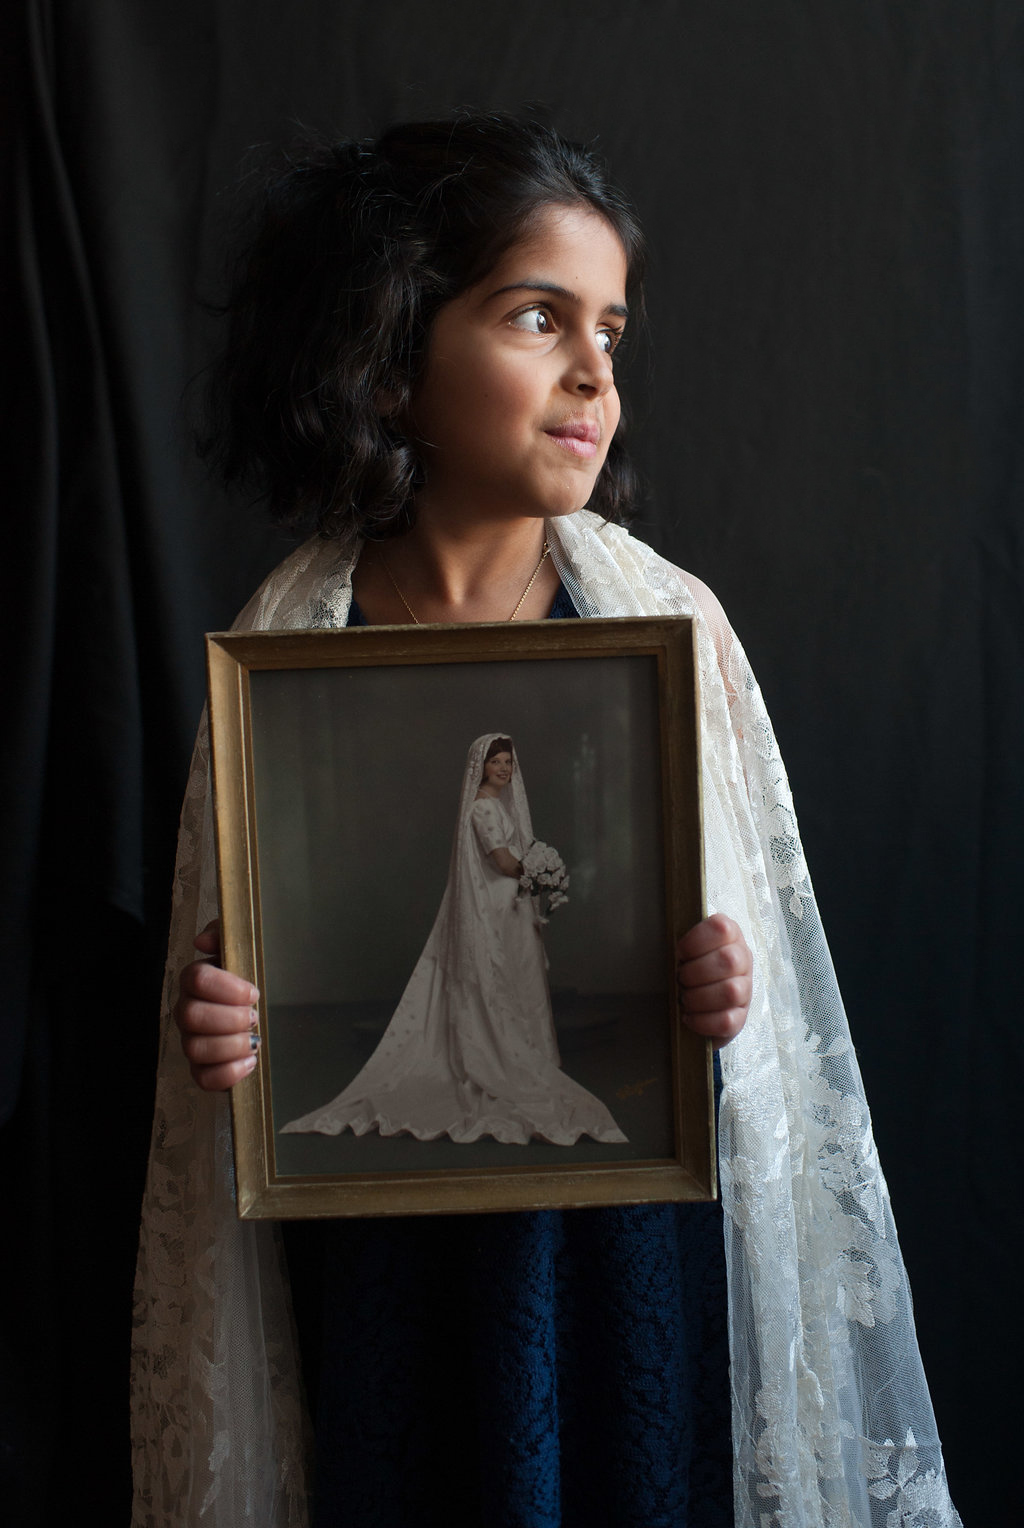 """The woven threads of a family come together in one veil. Anita and Chaitanya's young daughter, Amelia, holds a photo of her grandmother Charlotte at age 20 on her wedding day. Both are draped in the same mantilla. Charlotte says, """"The mantilla actually is a gift from my husband's family. When we were married his sisters made the mantilla to wear on our wedding day. And Anita also wore it when she was married to Chaitanya."""""""